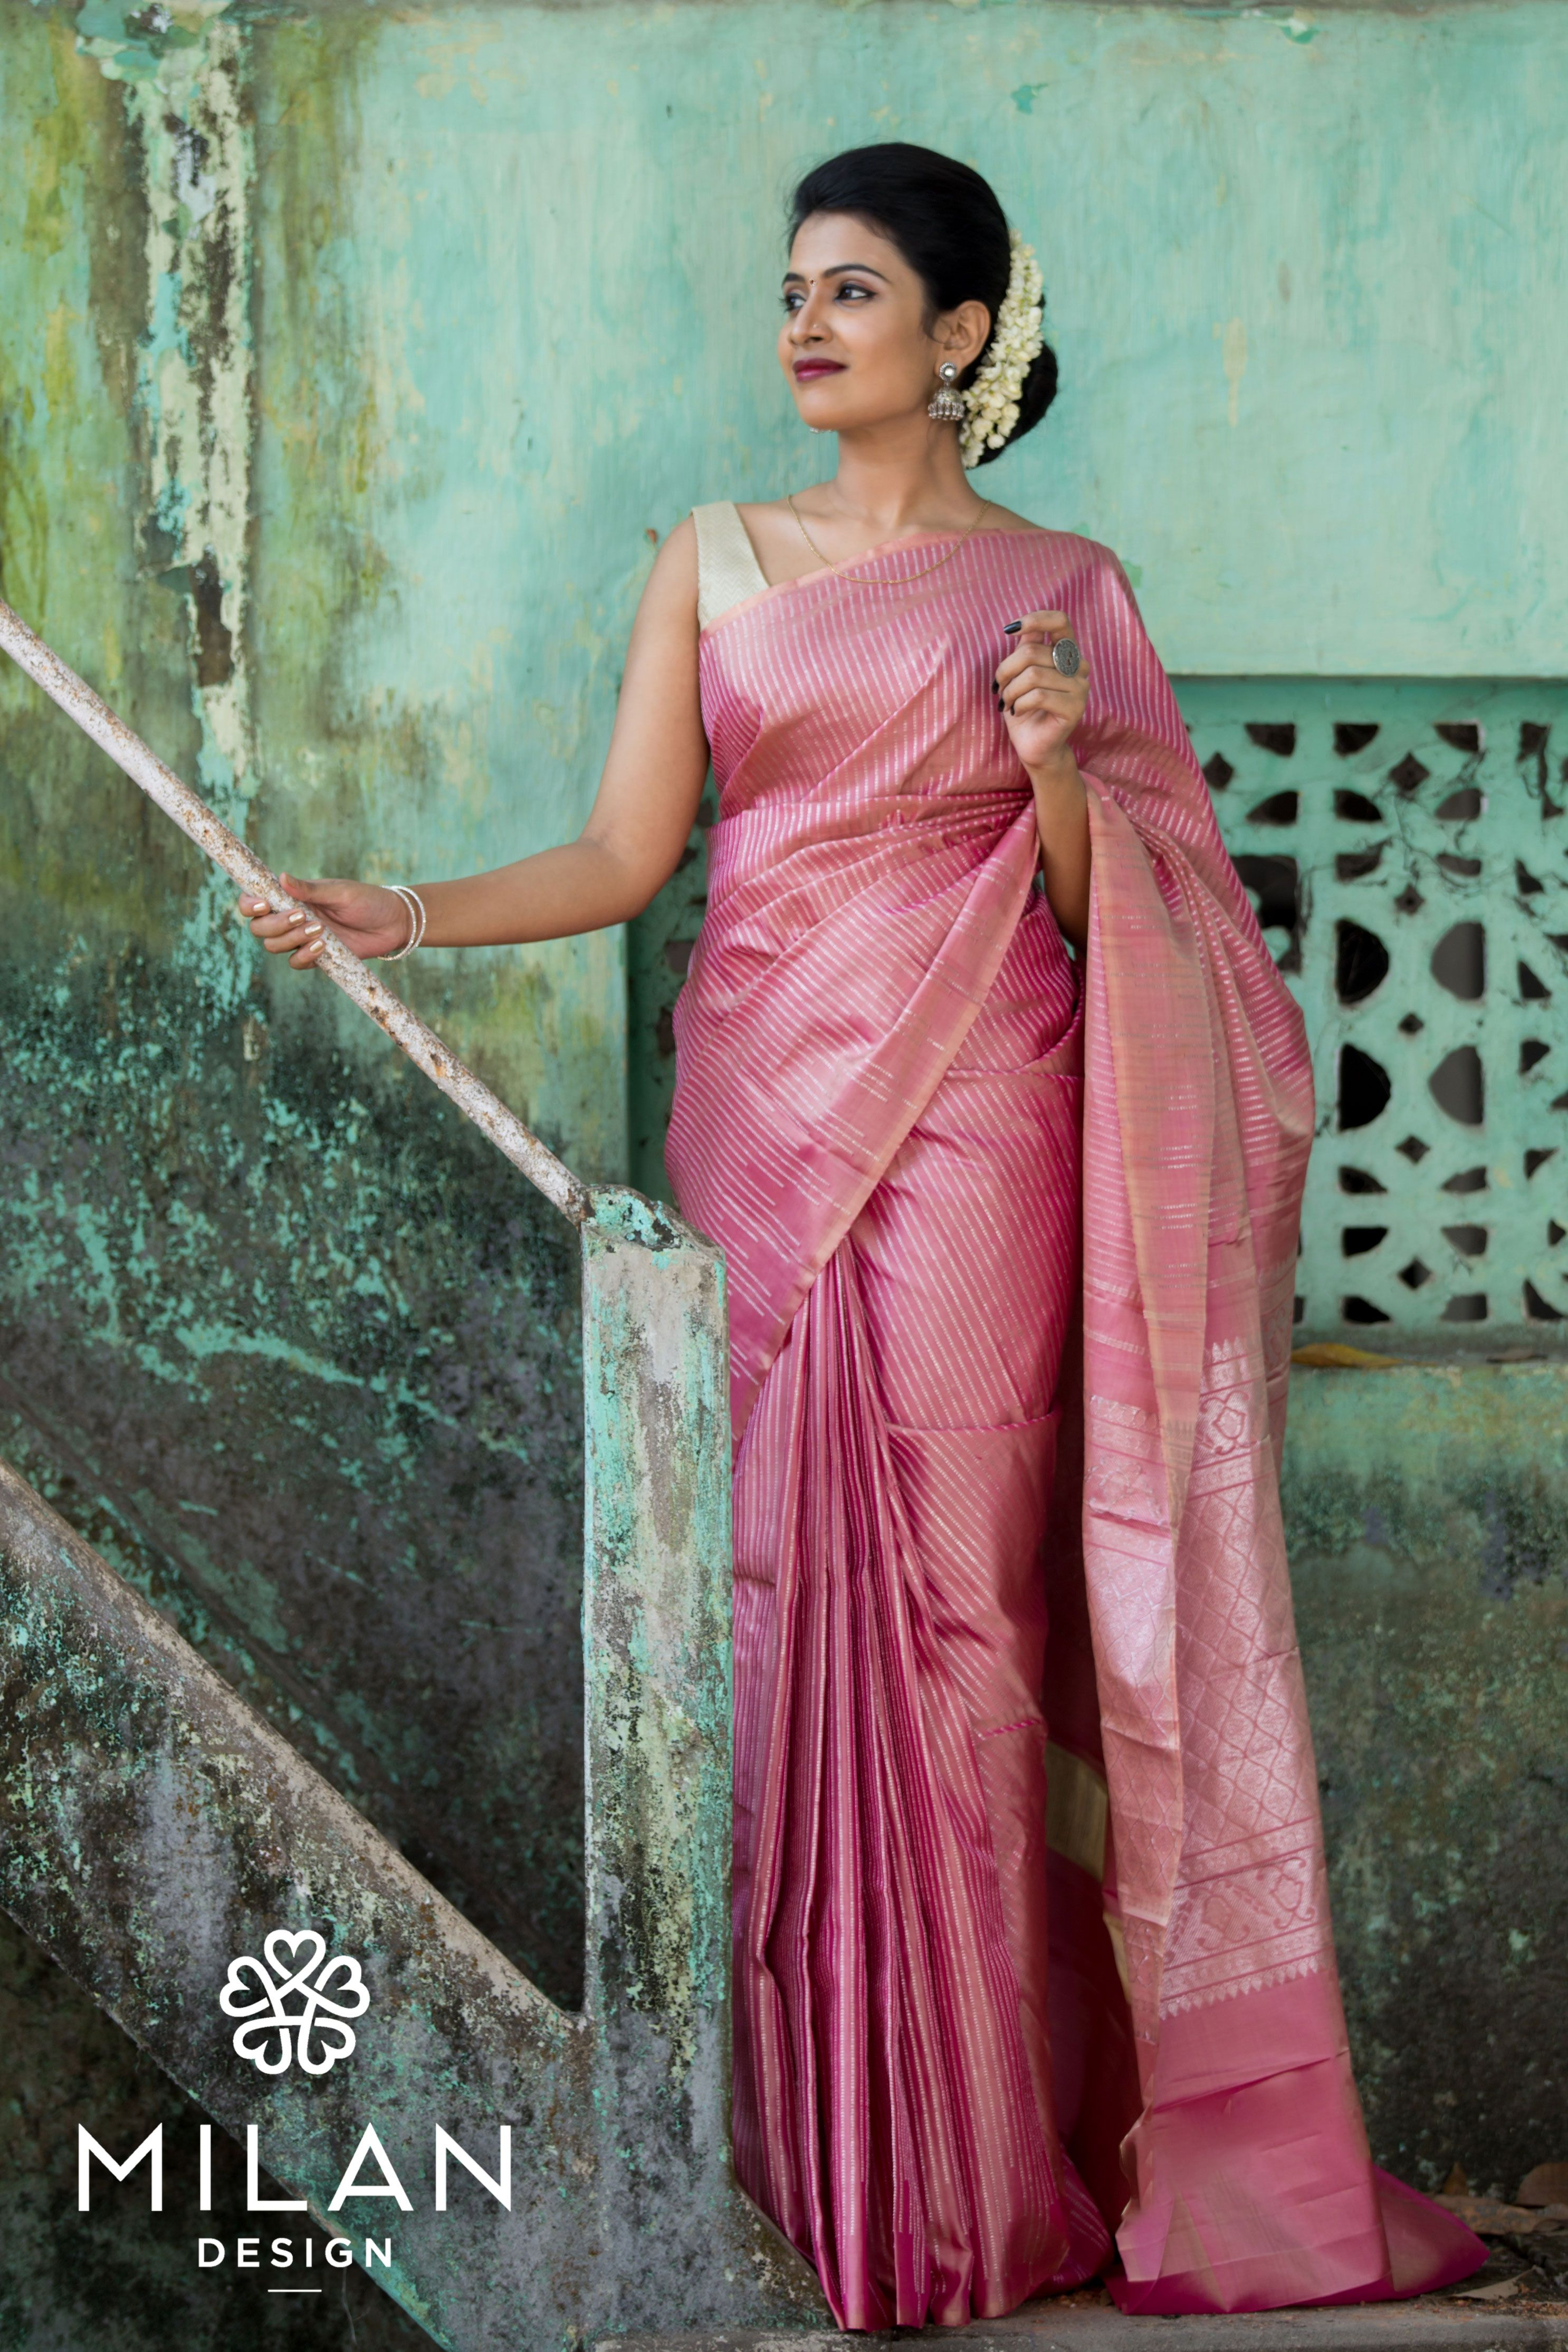 892502ff7a Bridal is #Kanchipuram, and Kanchipuram is MilanDesign! Our latest  collection of classic and